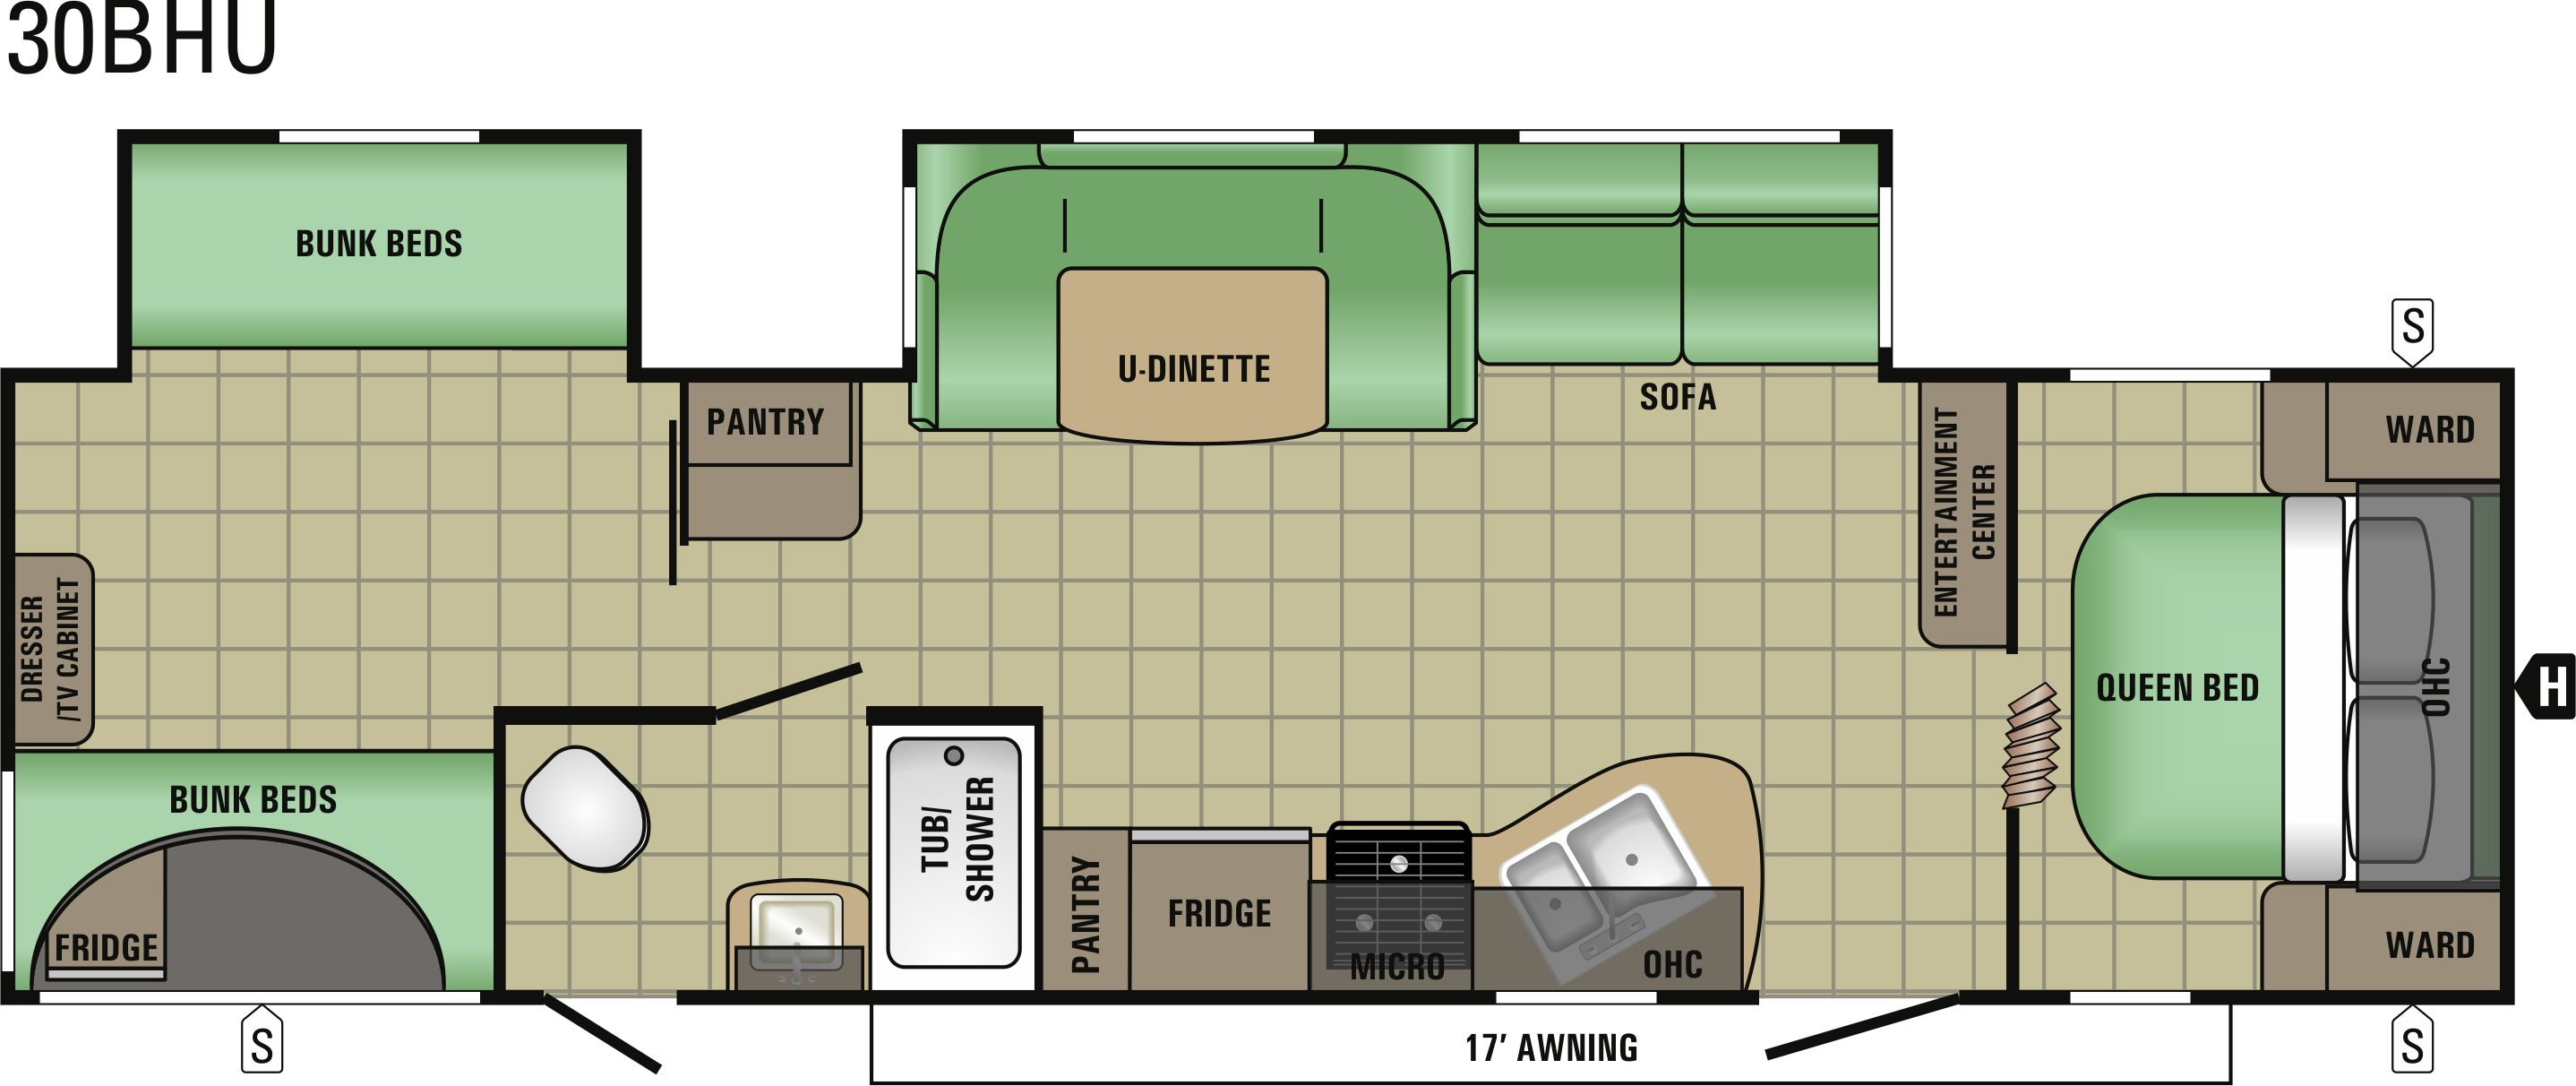 30BHU Floorplan